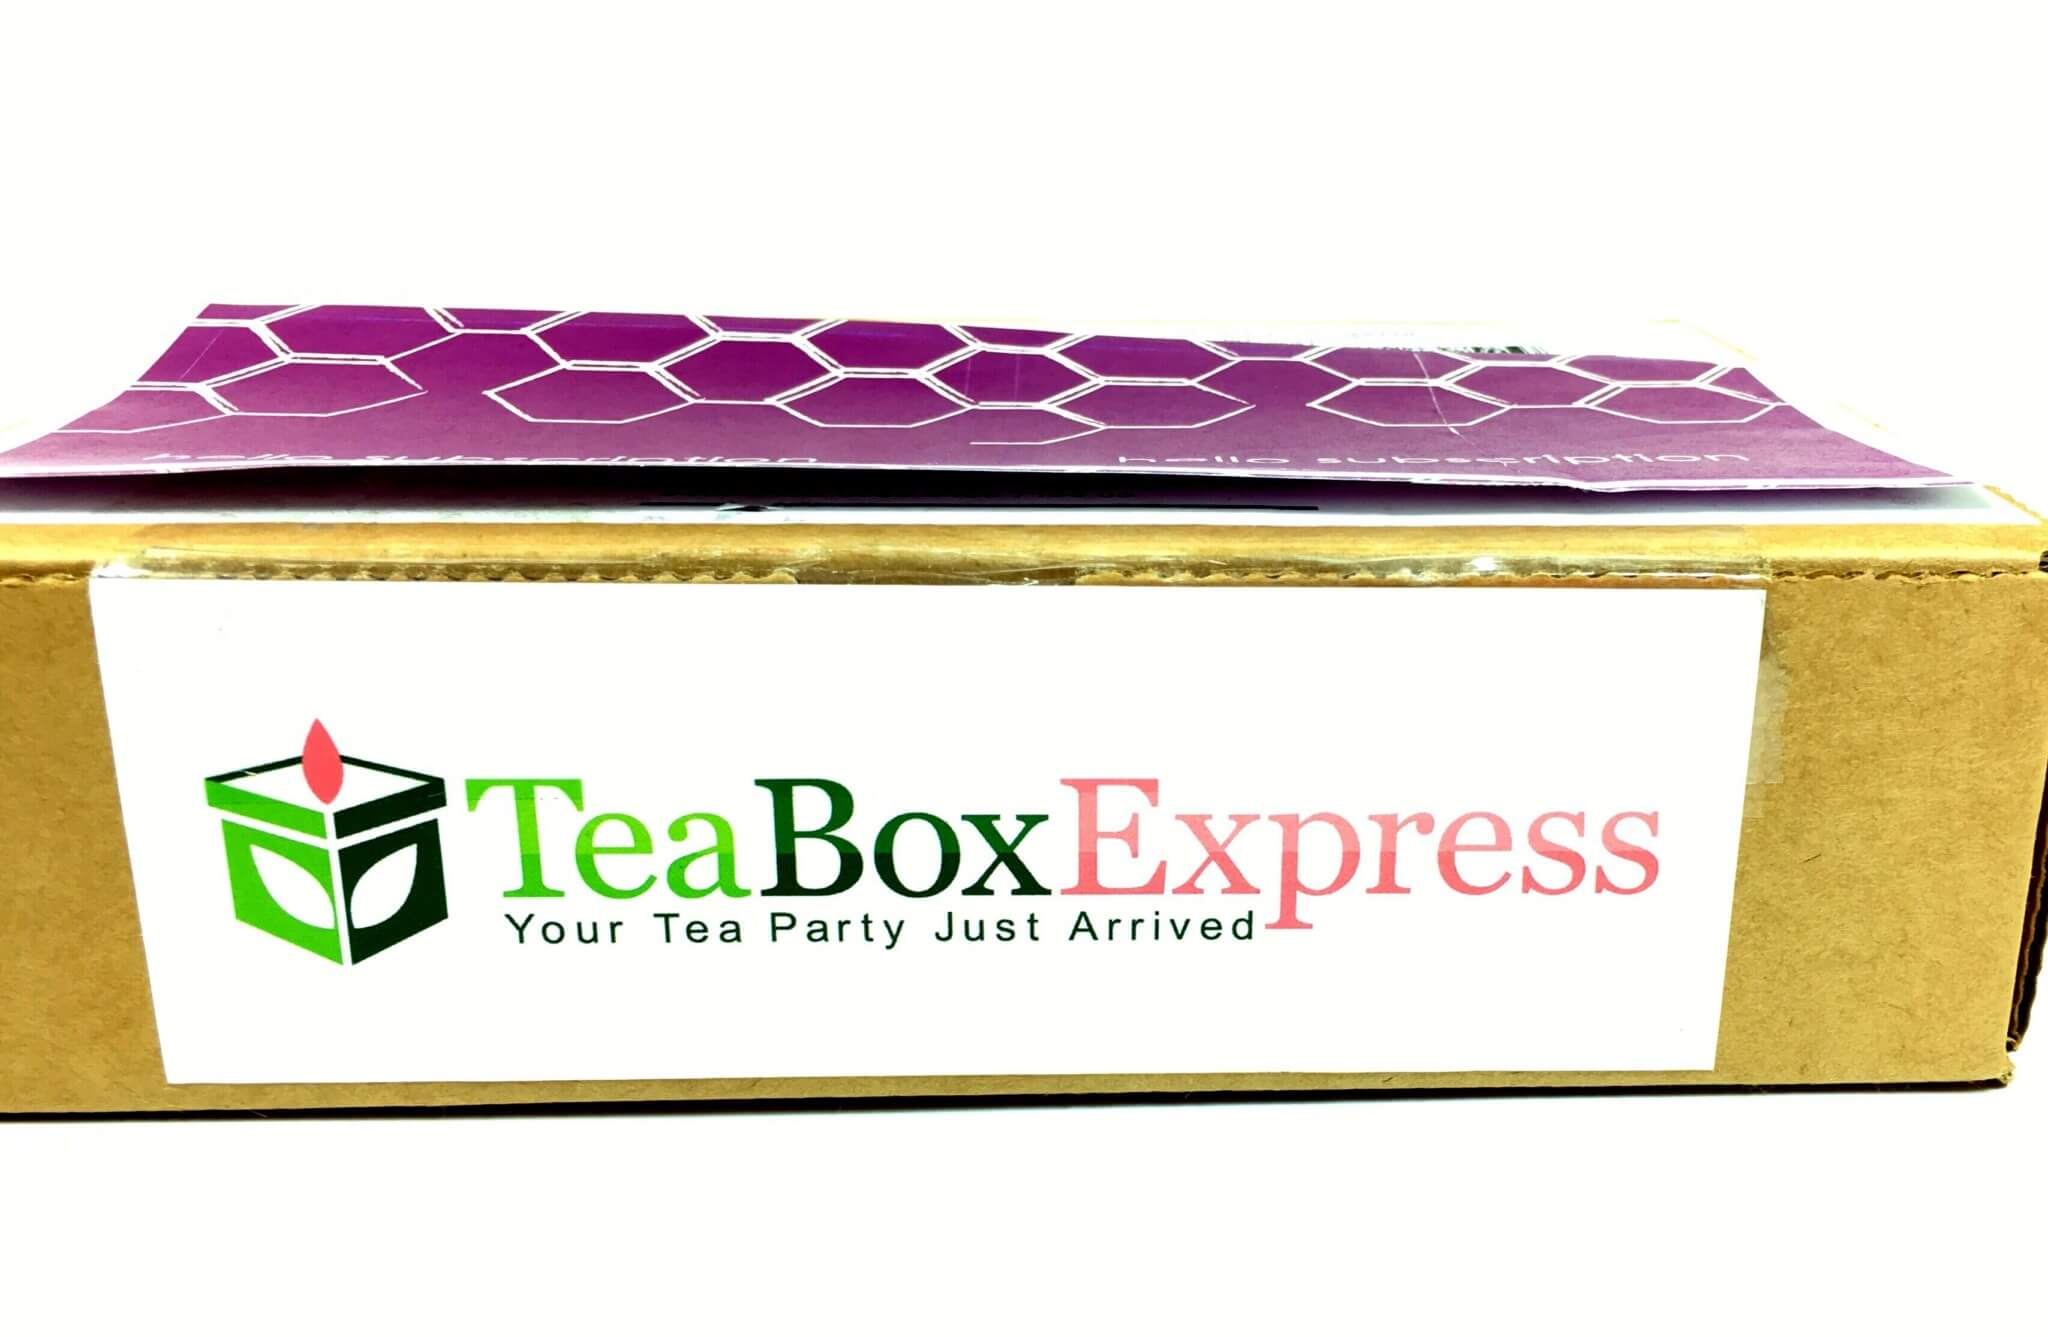 Tea Box Express August 2016 Subscription Review & Coupon